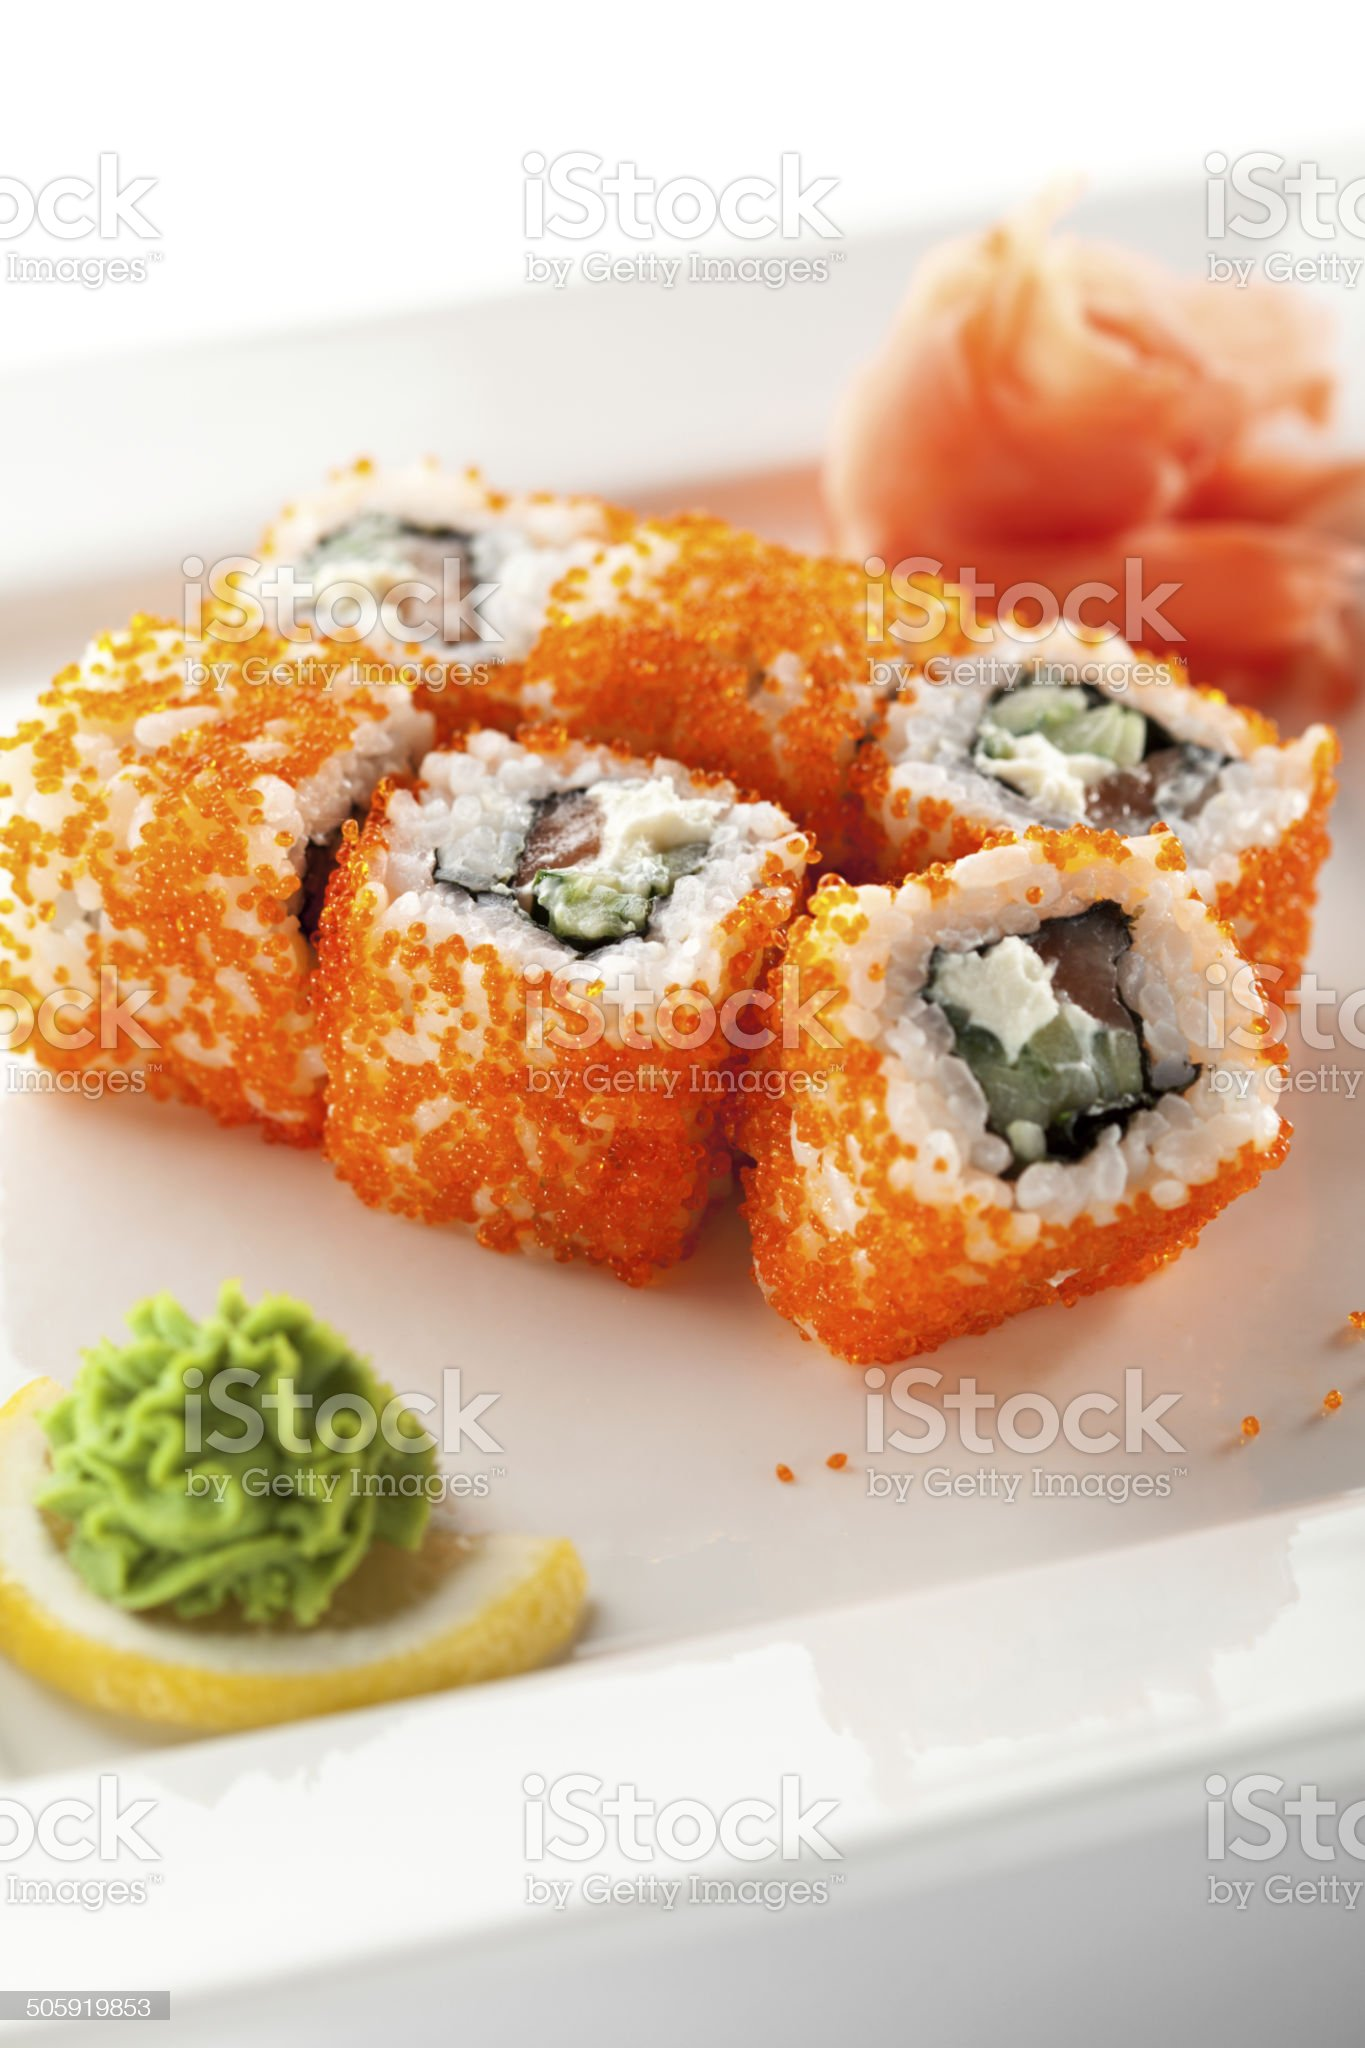 Salmon and Tobiko Roll royalty-free stock photo